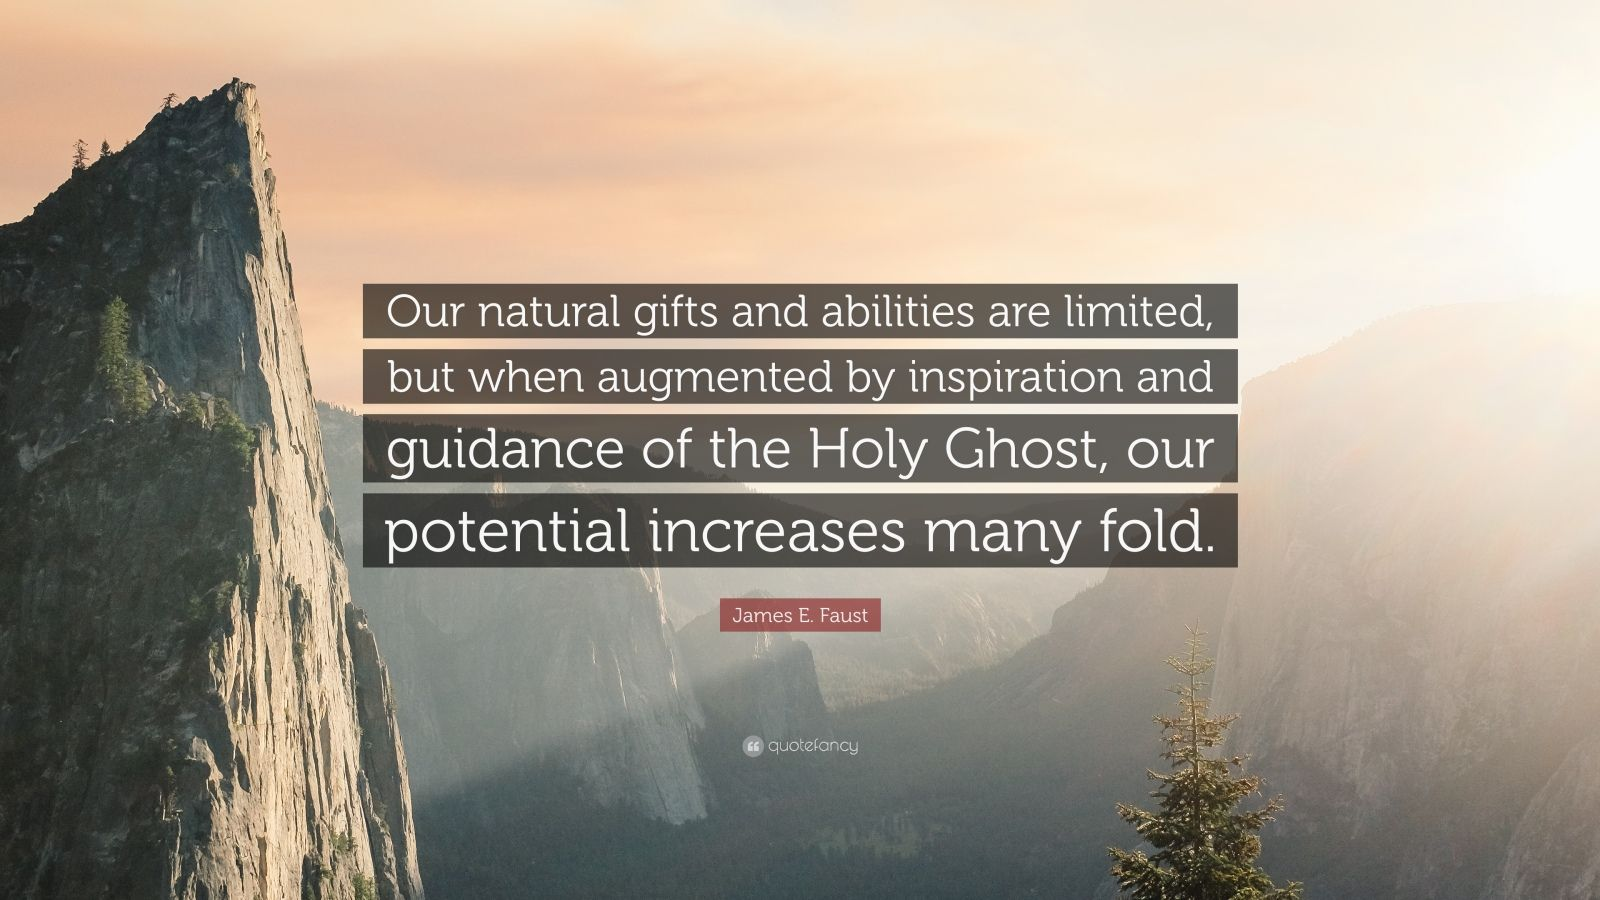 """James E. Faust Quote: """"Our natural gifts and abilities are limited, but when augmented by inspiration and guidance of the Holy Ghost, our potential increases many fold."""""""